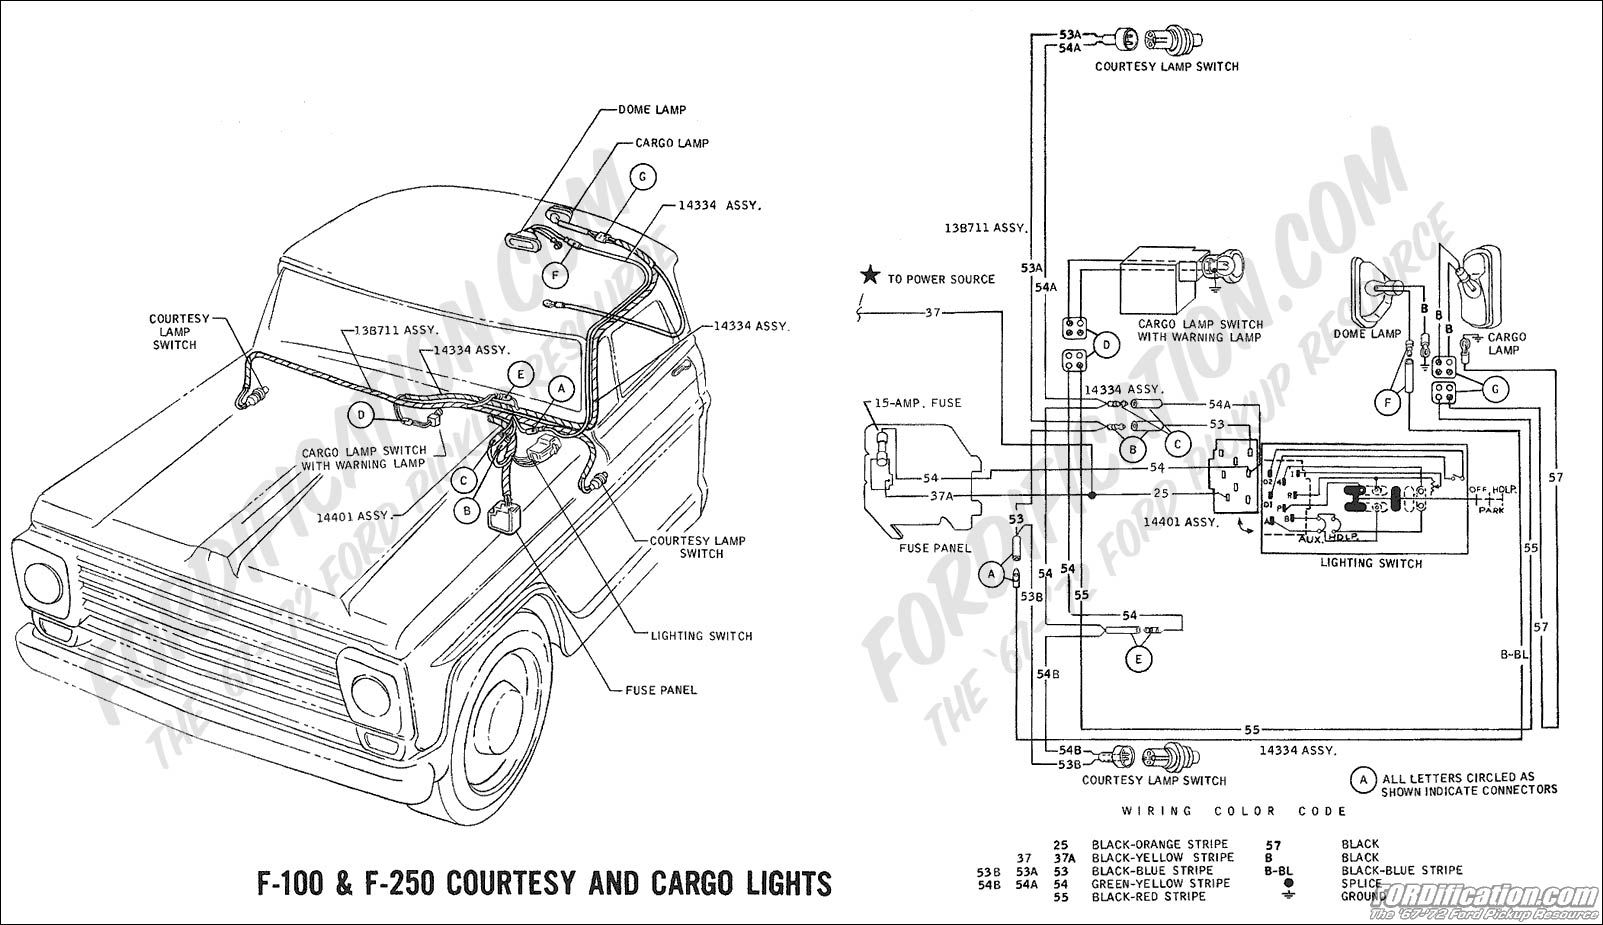 wiring diagram for dcc layout